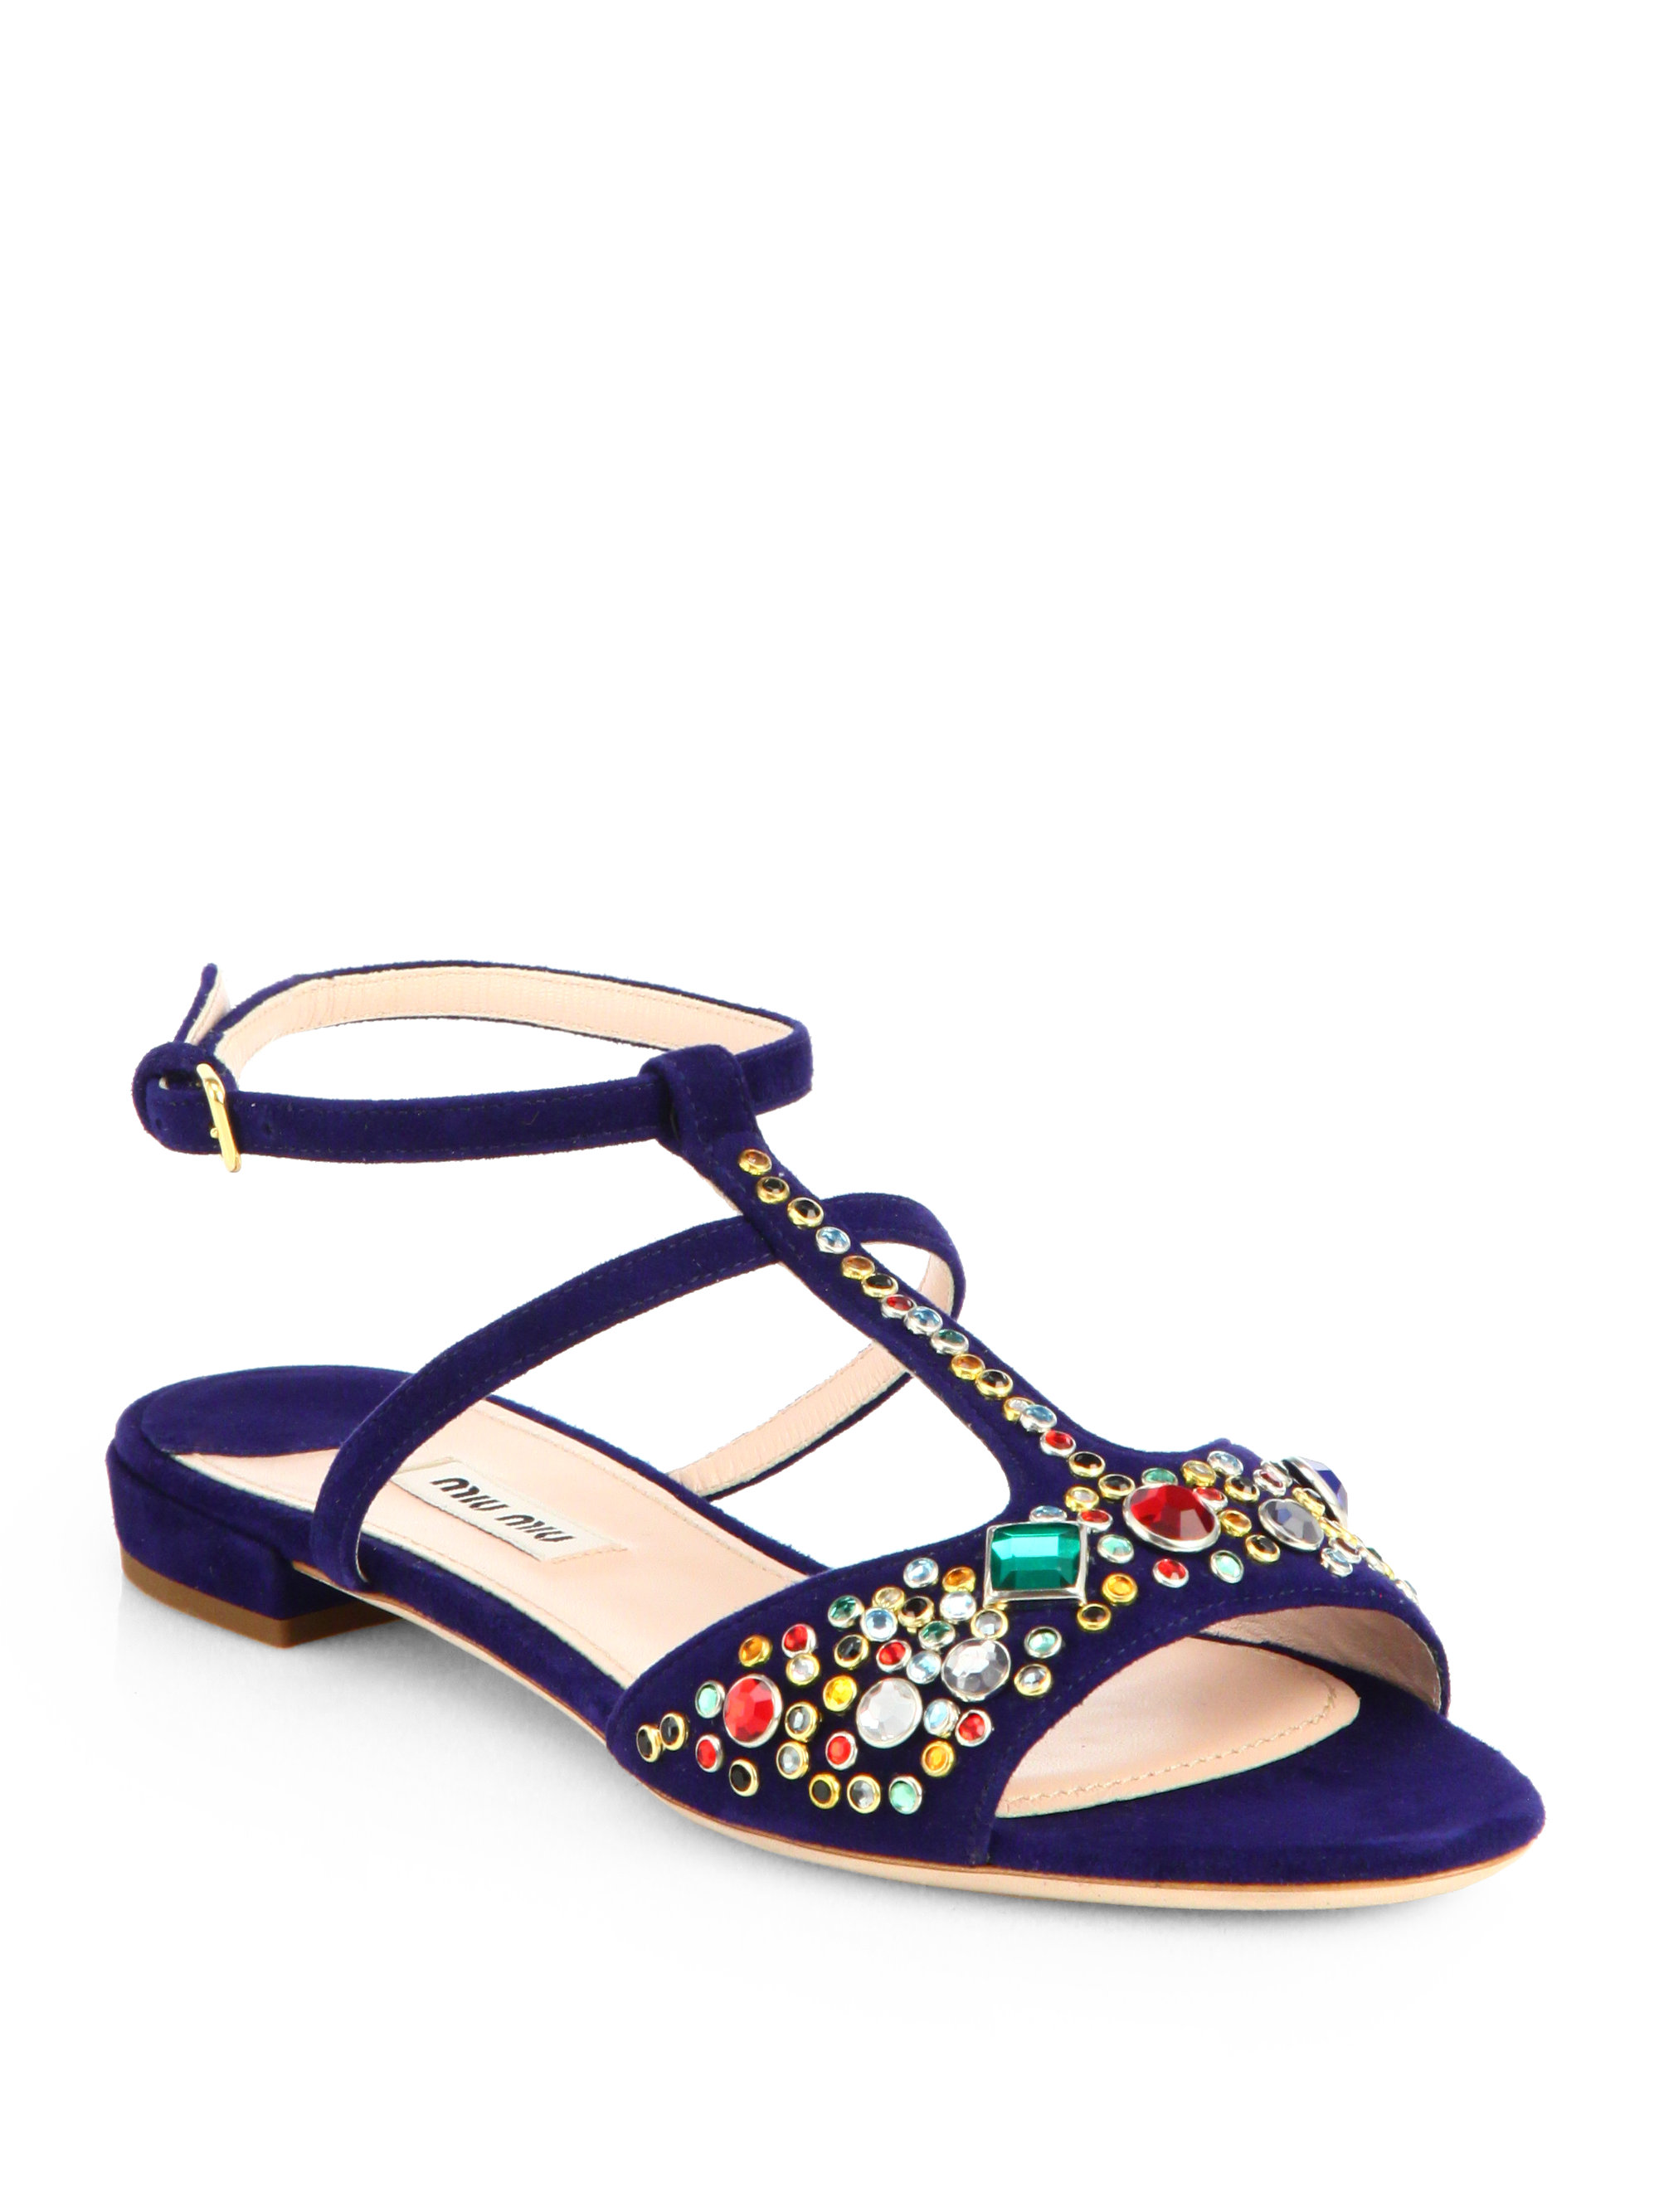 Lyst Miu Miu Jeweled Suede Sandals In Blue